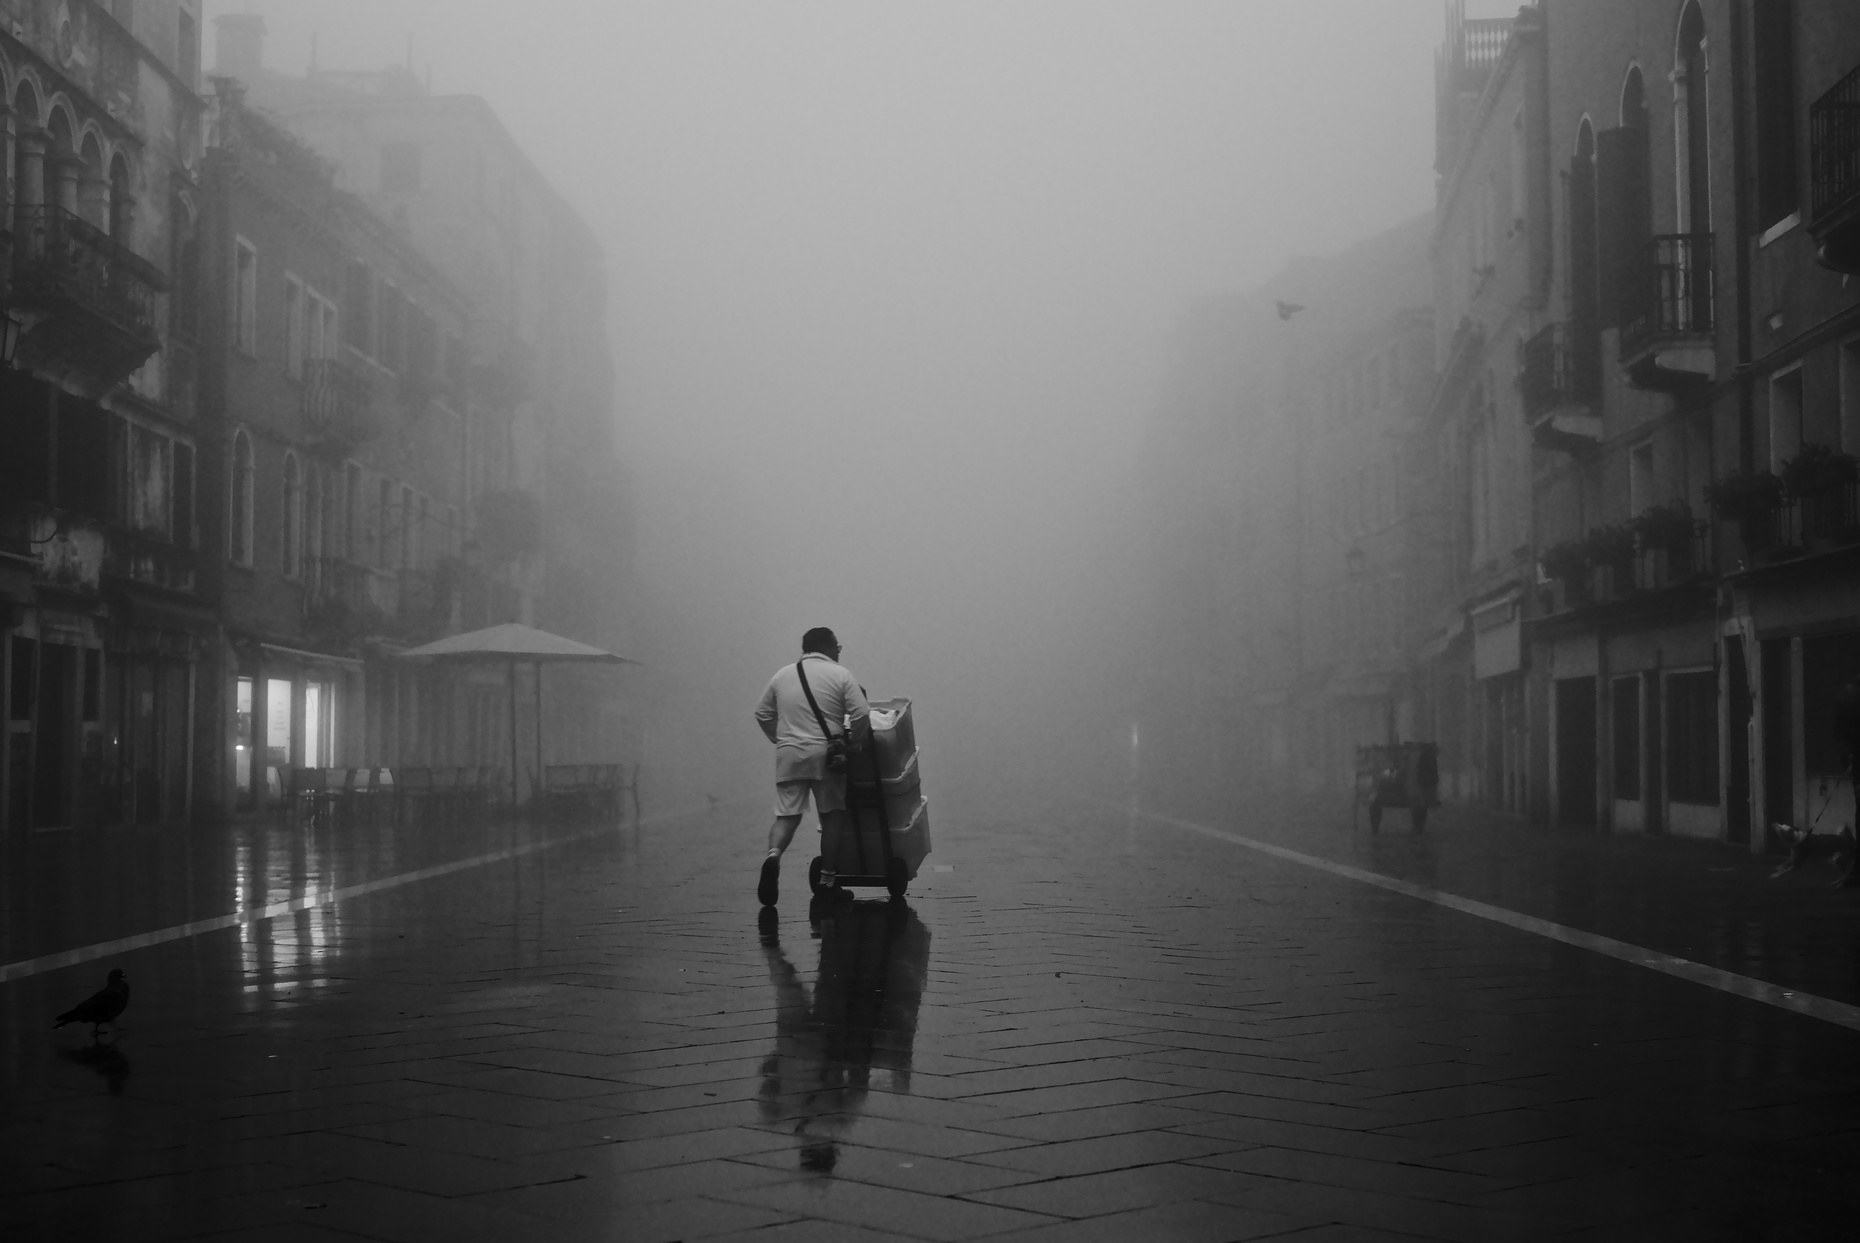 The local bakery doing an early delivery of bread in the Via Garibaldi in Venice, on a very foggy morning.